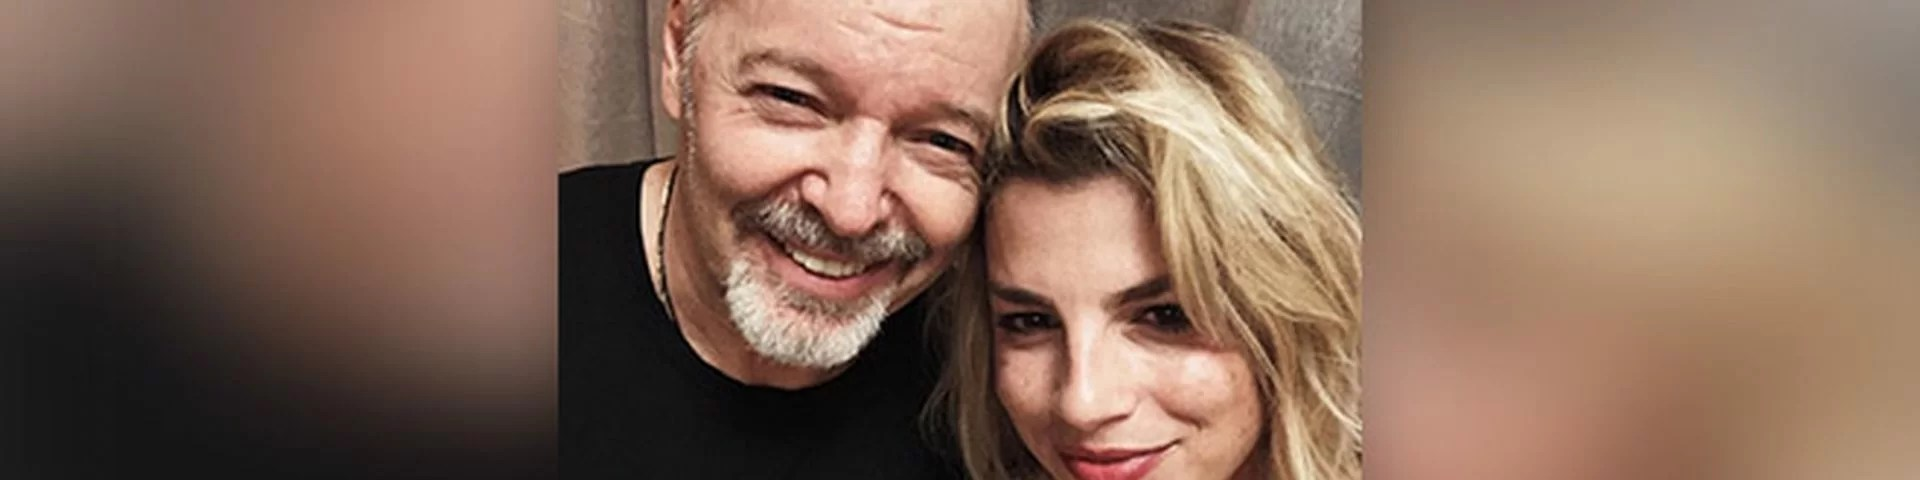 Accordi E Vasco Rossi Emma Marrone E Vasco Rossi Duetto In Arrivo Video Cover